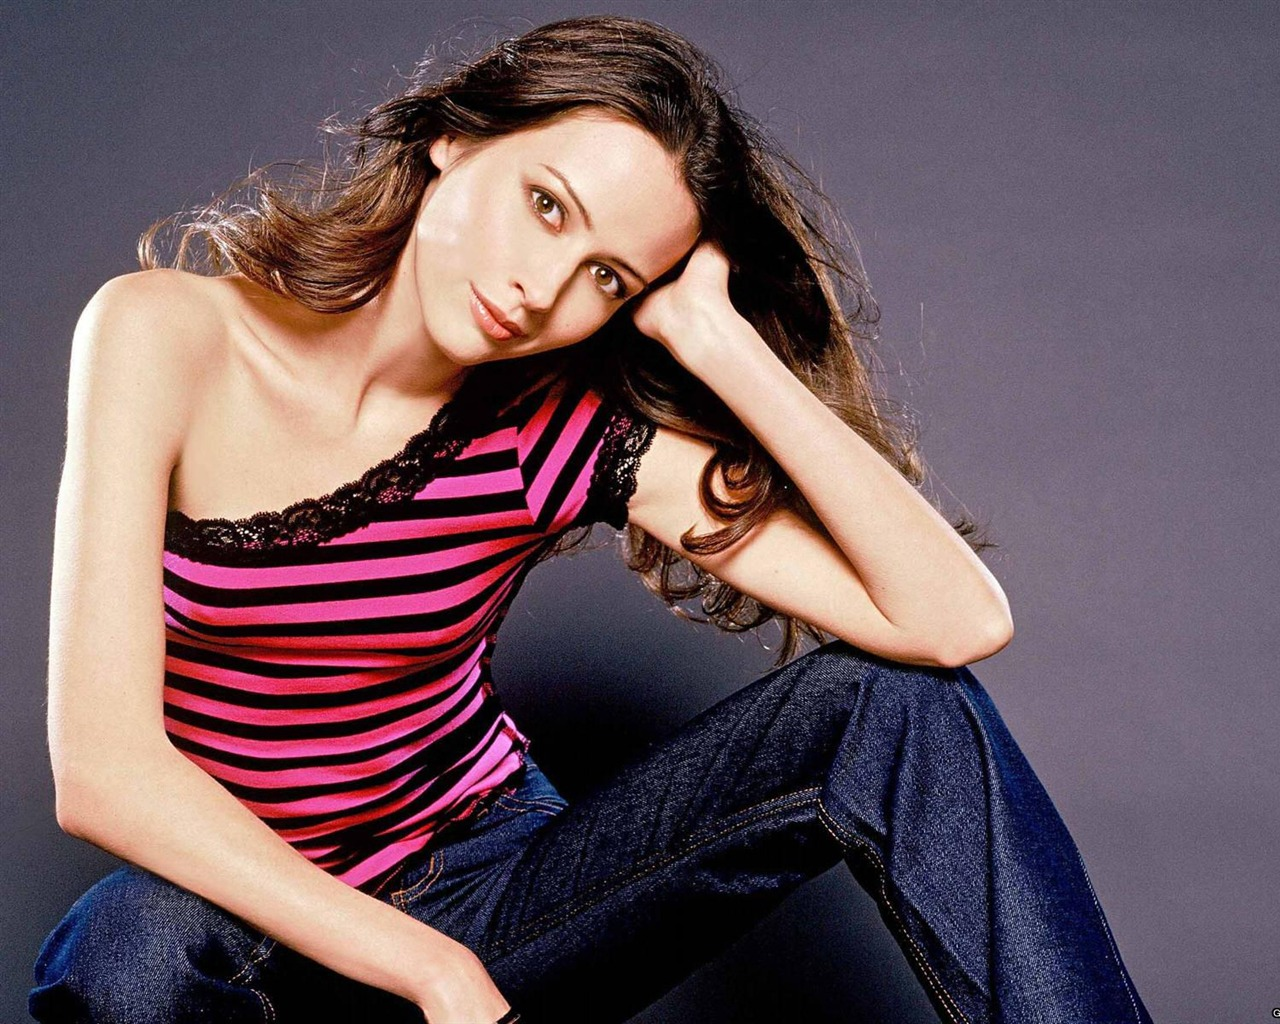 Amy Acker #011 - 1280x1024 Wallpapers Pictures Photos Images